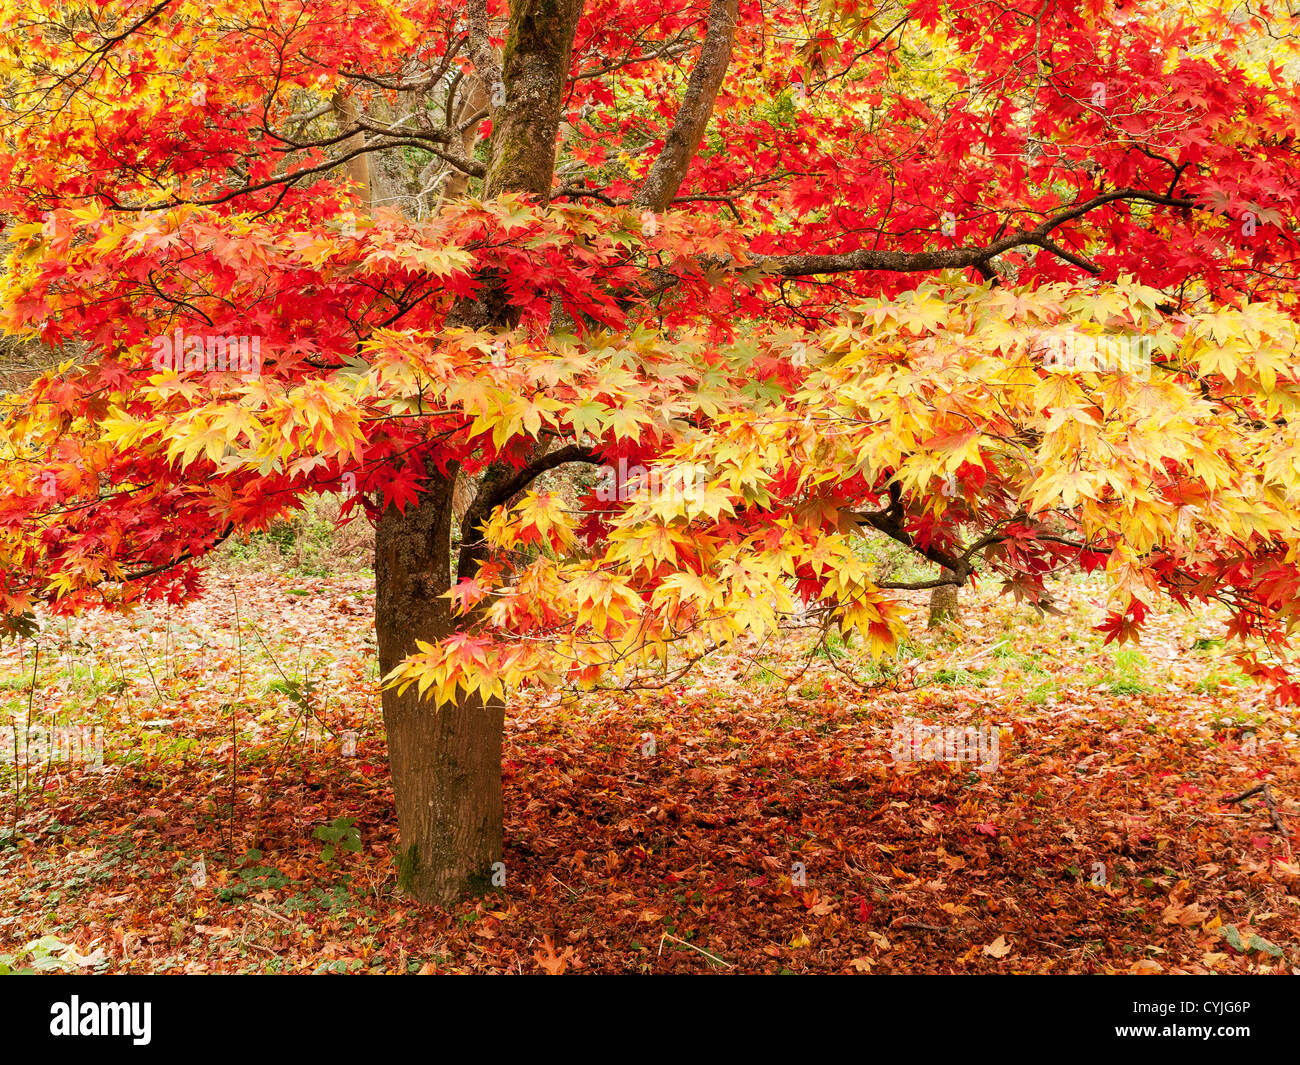 Acer tree and leaves common name maple in full autumn colour in stock photo royalty free - Decorative trees with red leaves amazing contrasts ...